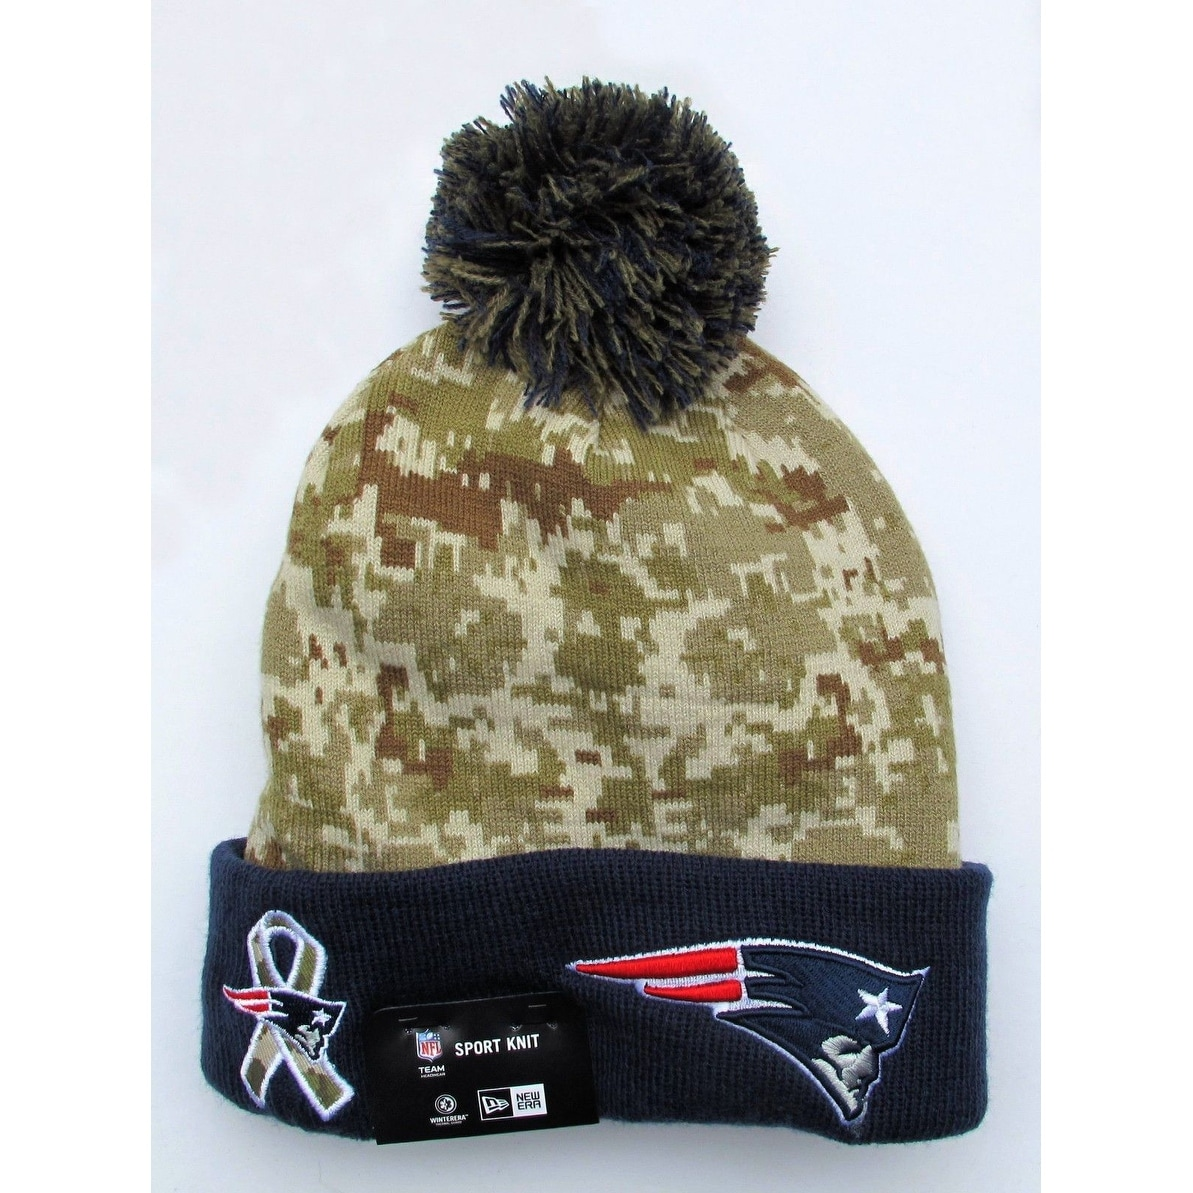 competitive price 28cee 2c4e2 ... inexpensive shop new era nfl 2015 salute knit pom beanie hat new  england patriots free shipping